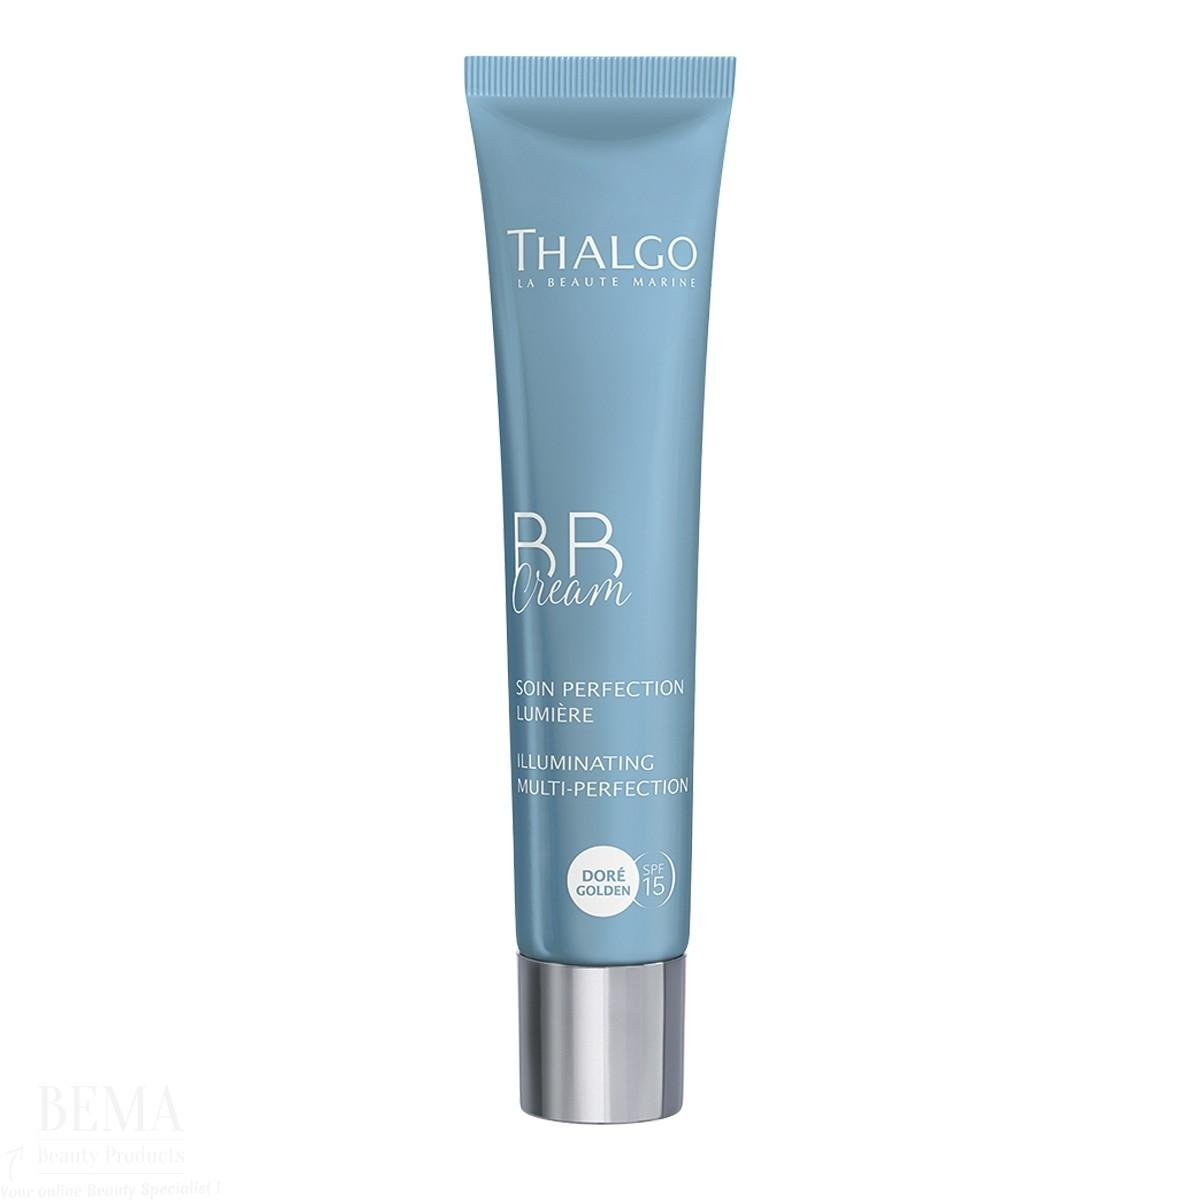 Thalgo BB Cream Illuminating Multi-Perfection Golden 40ml 64034